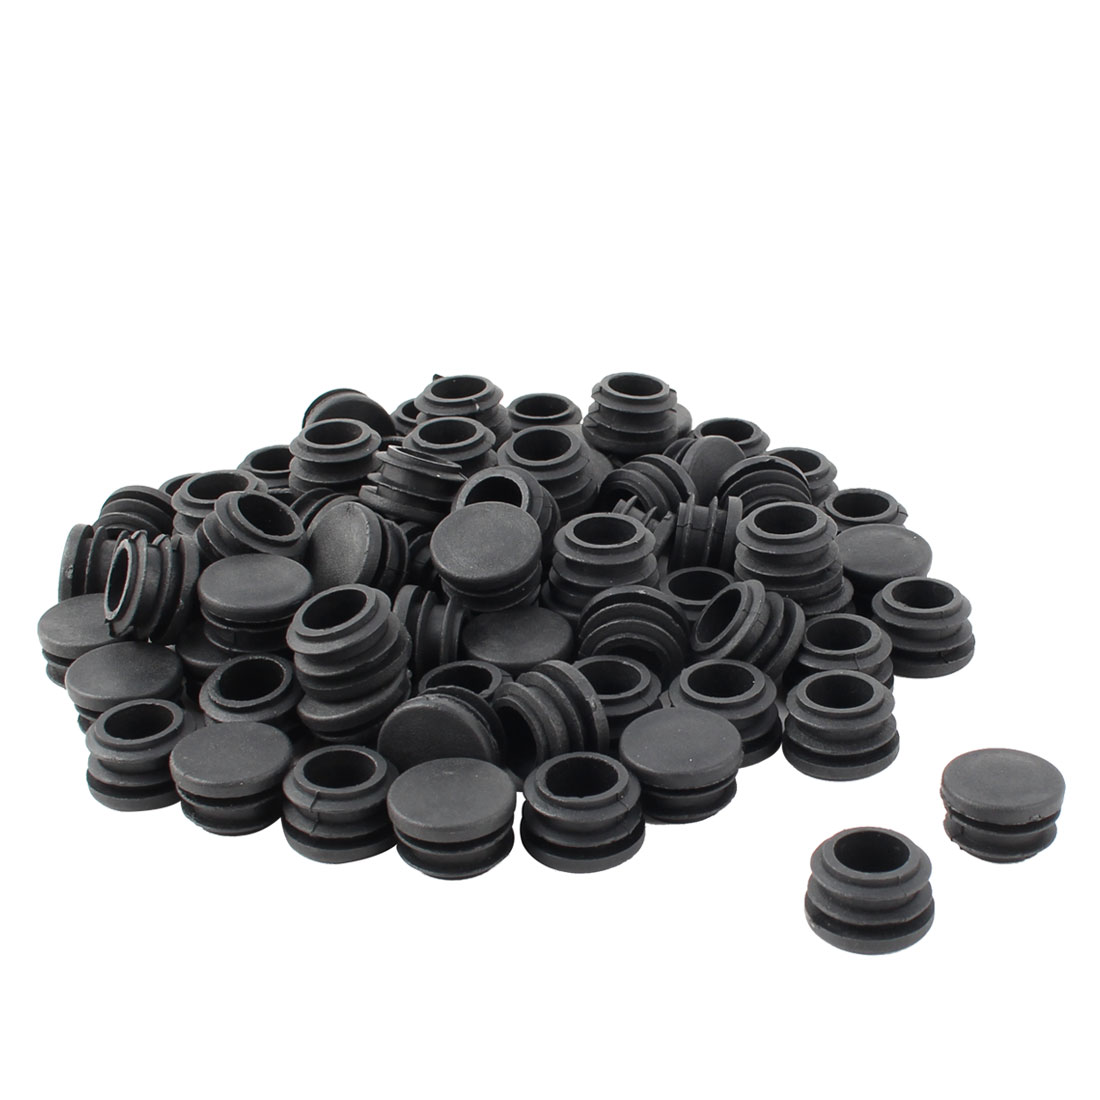 Furniture Table Chair Legs Plastic Round Tube Pipe Insert Cap Cover Stopper Black 22mm Dia 80pcs